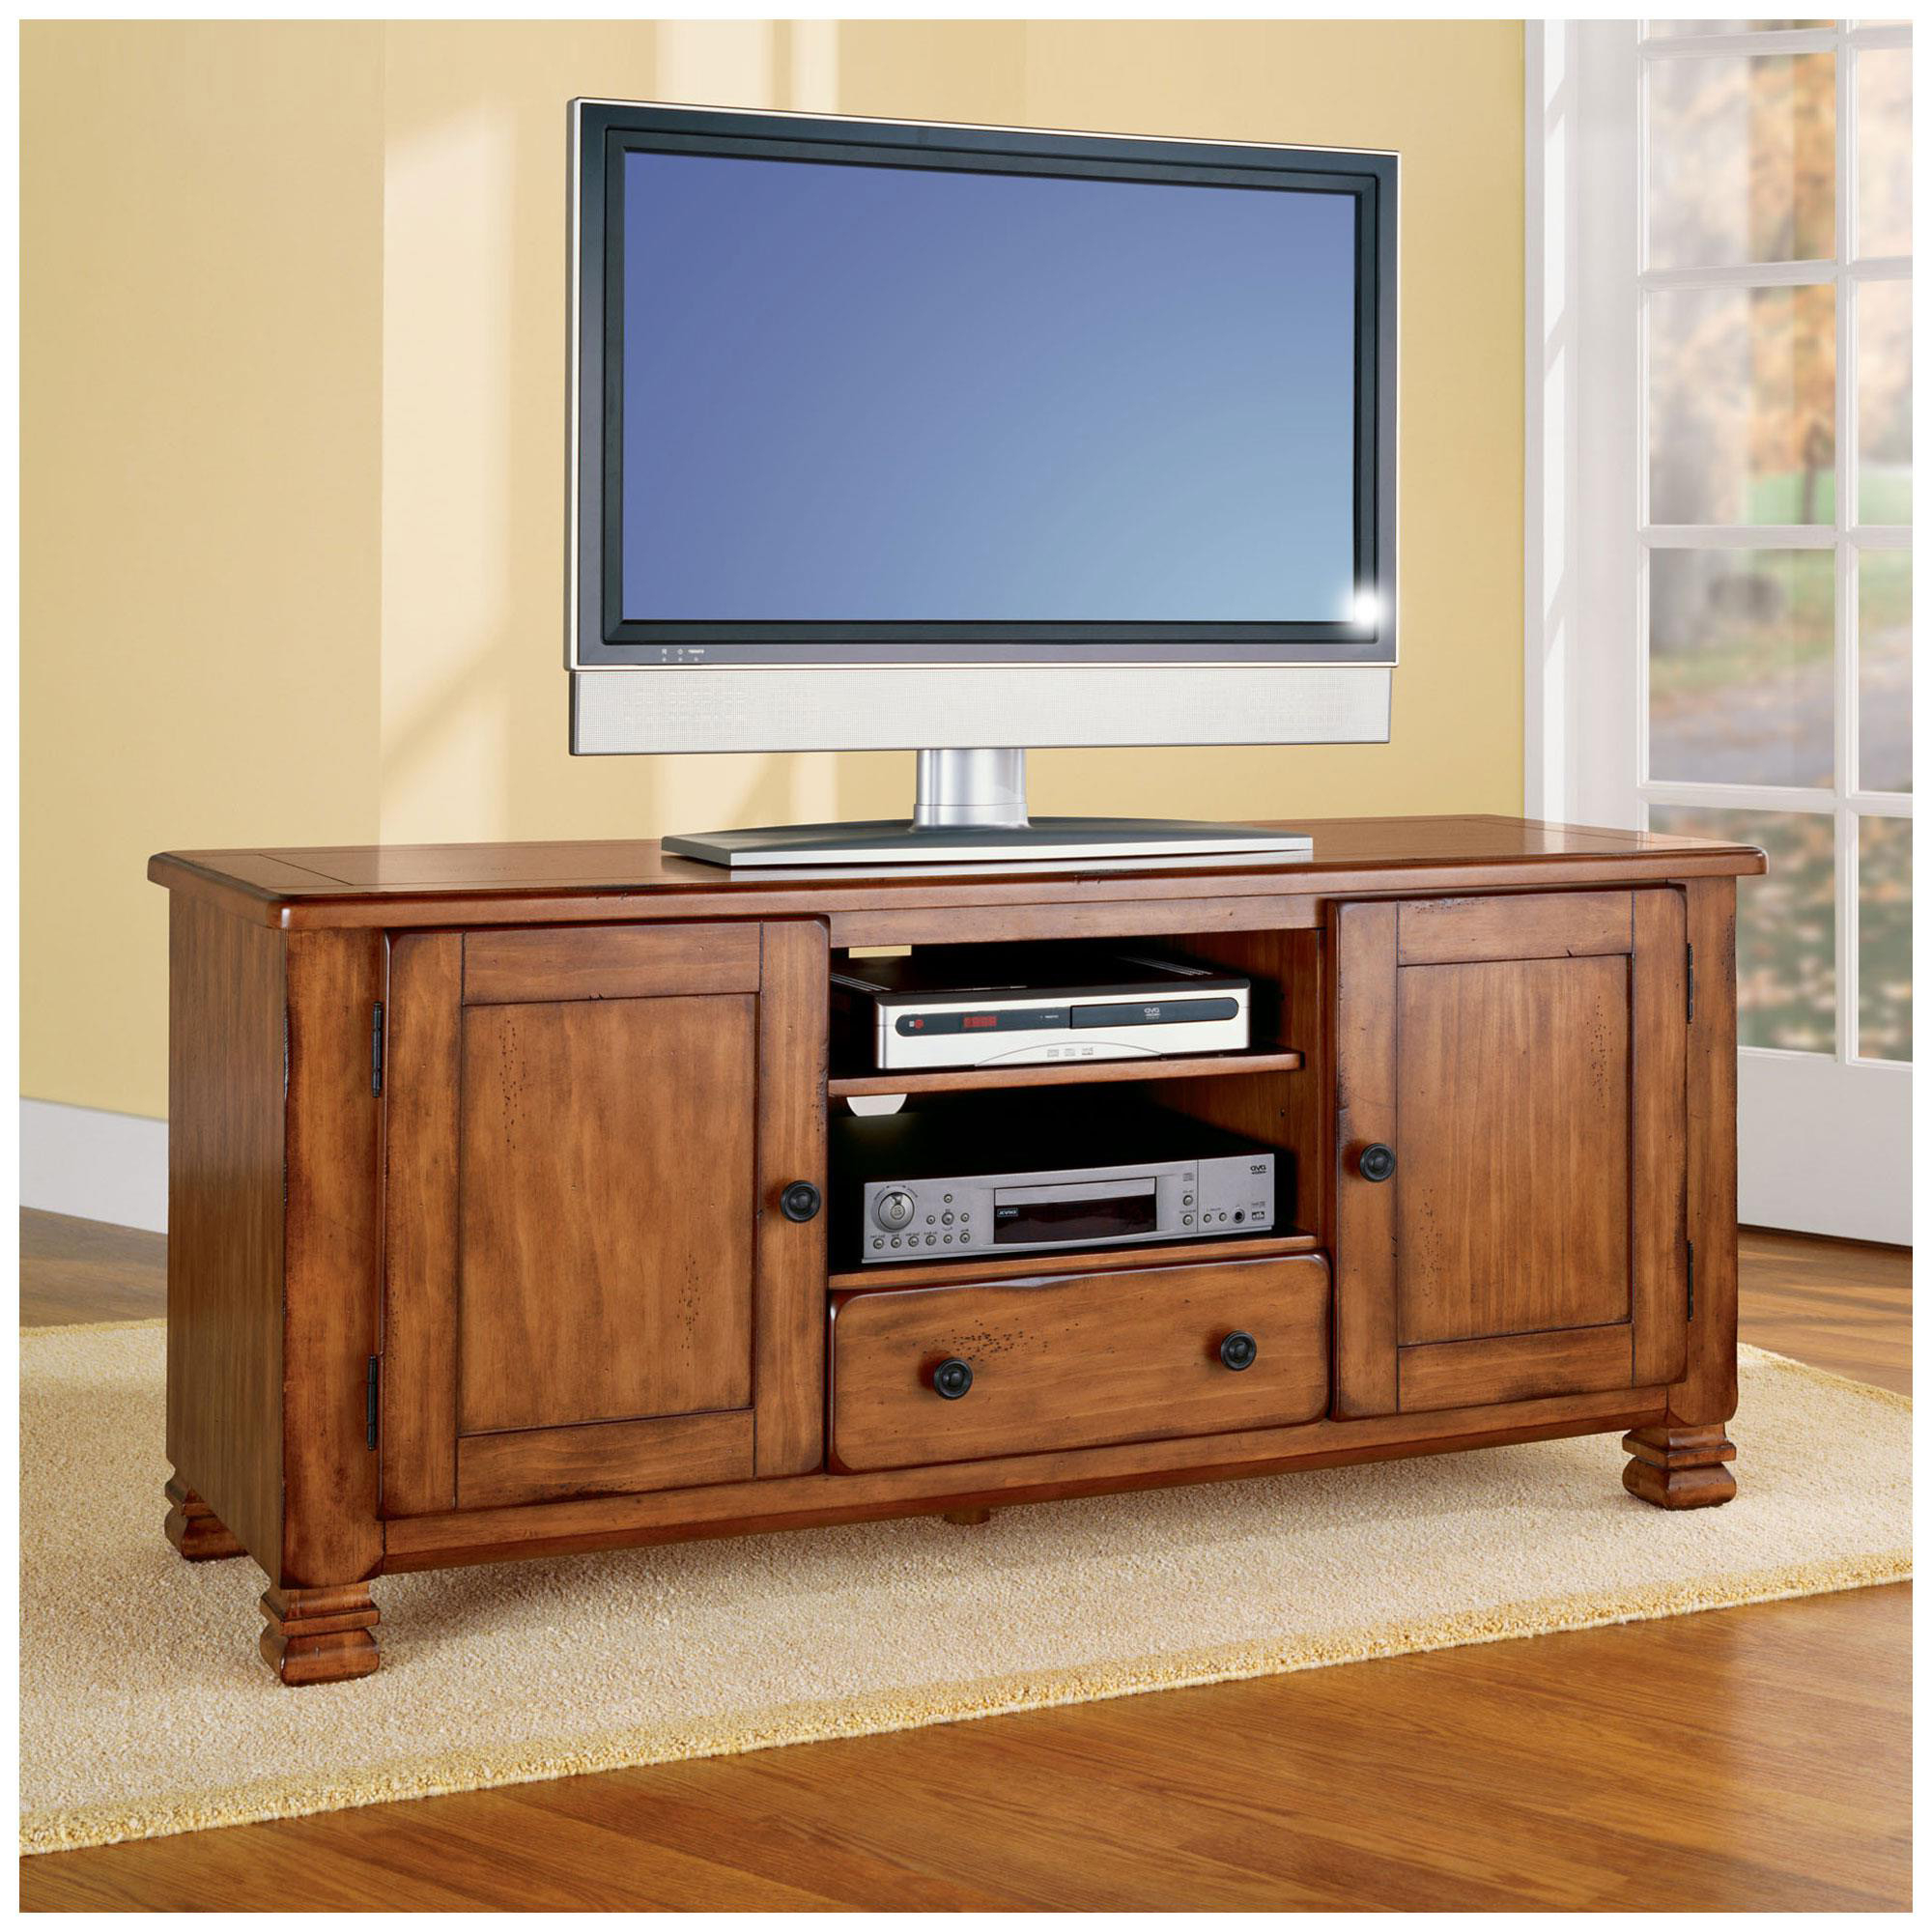 Recent Wooden Tv Stands For Flat Screens Regarding Amish Corner Tv Stand Solid Wood Console Mission Style Stands For (View 9 of 20)